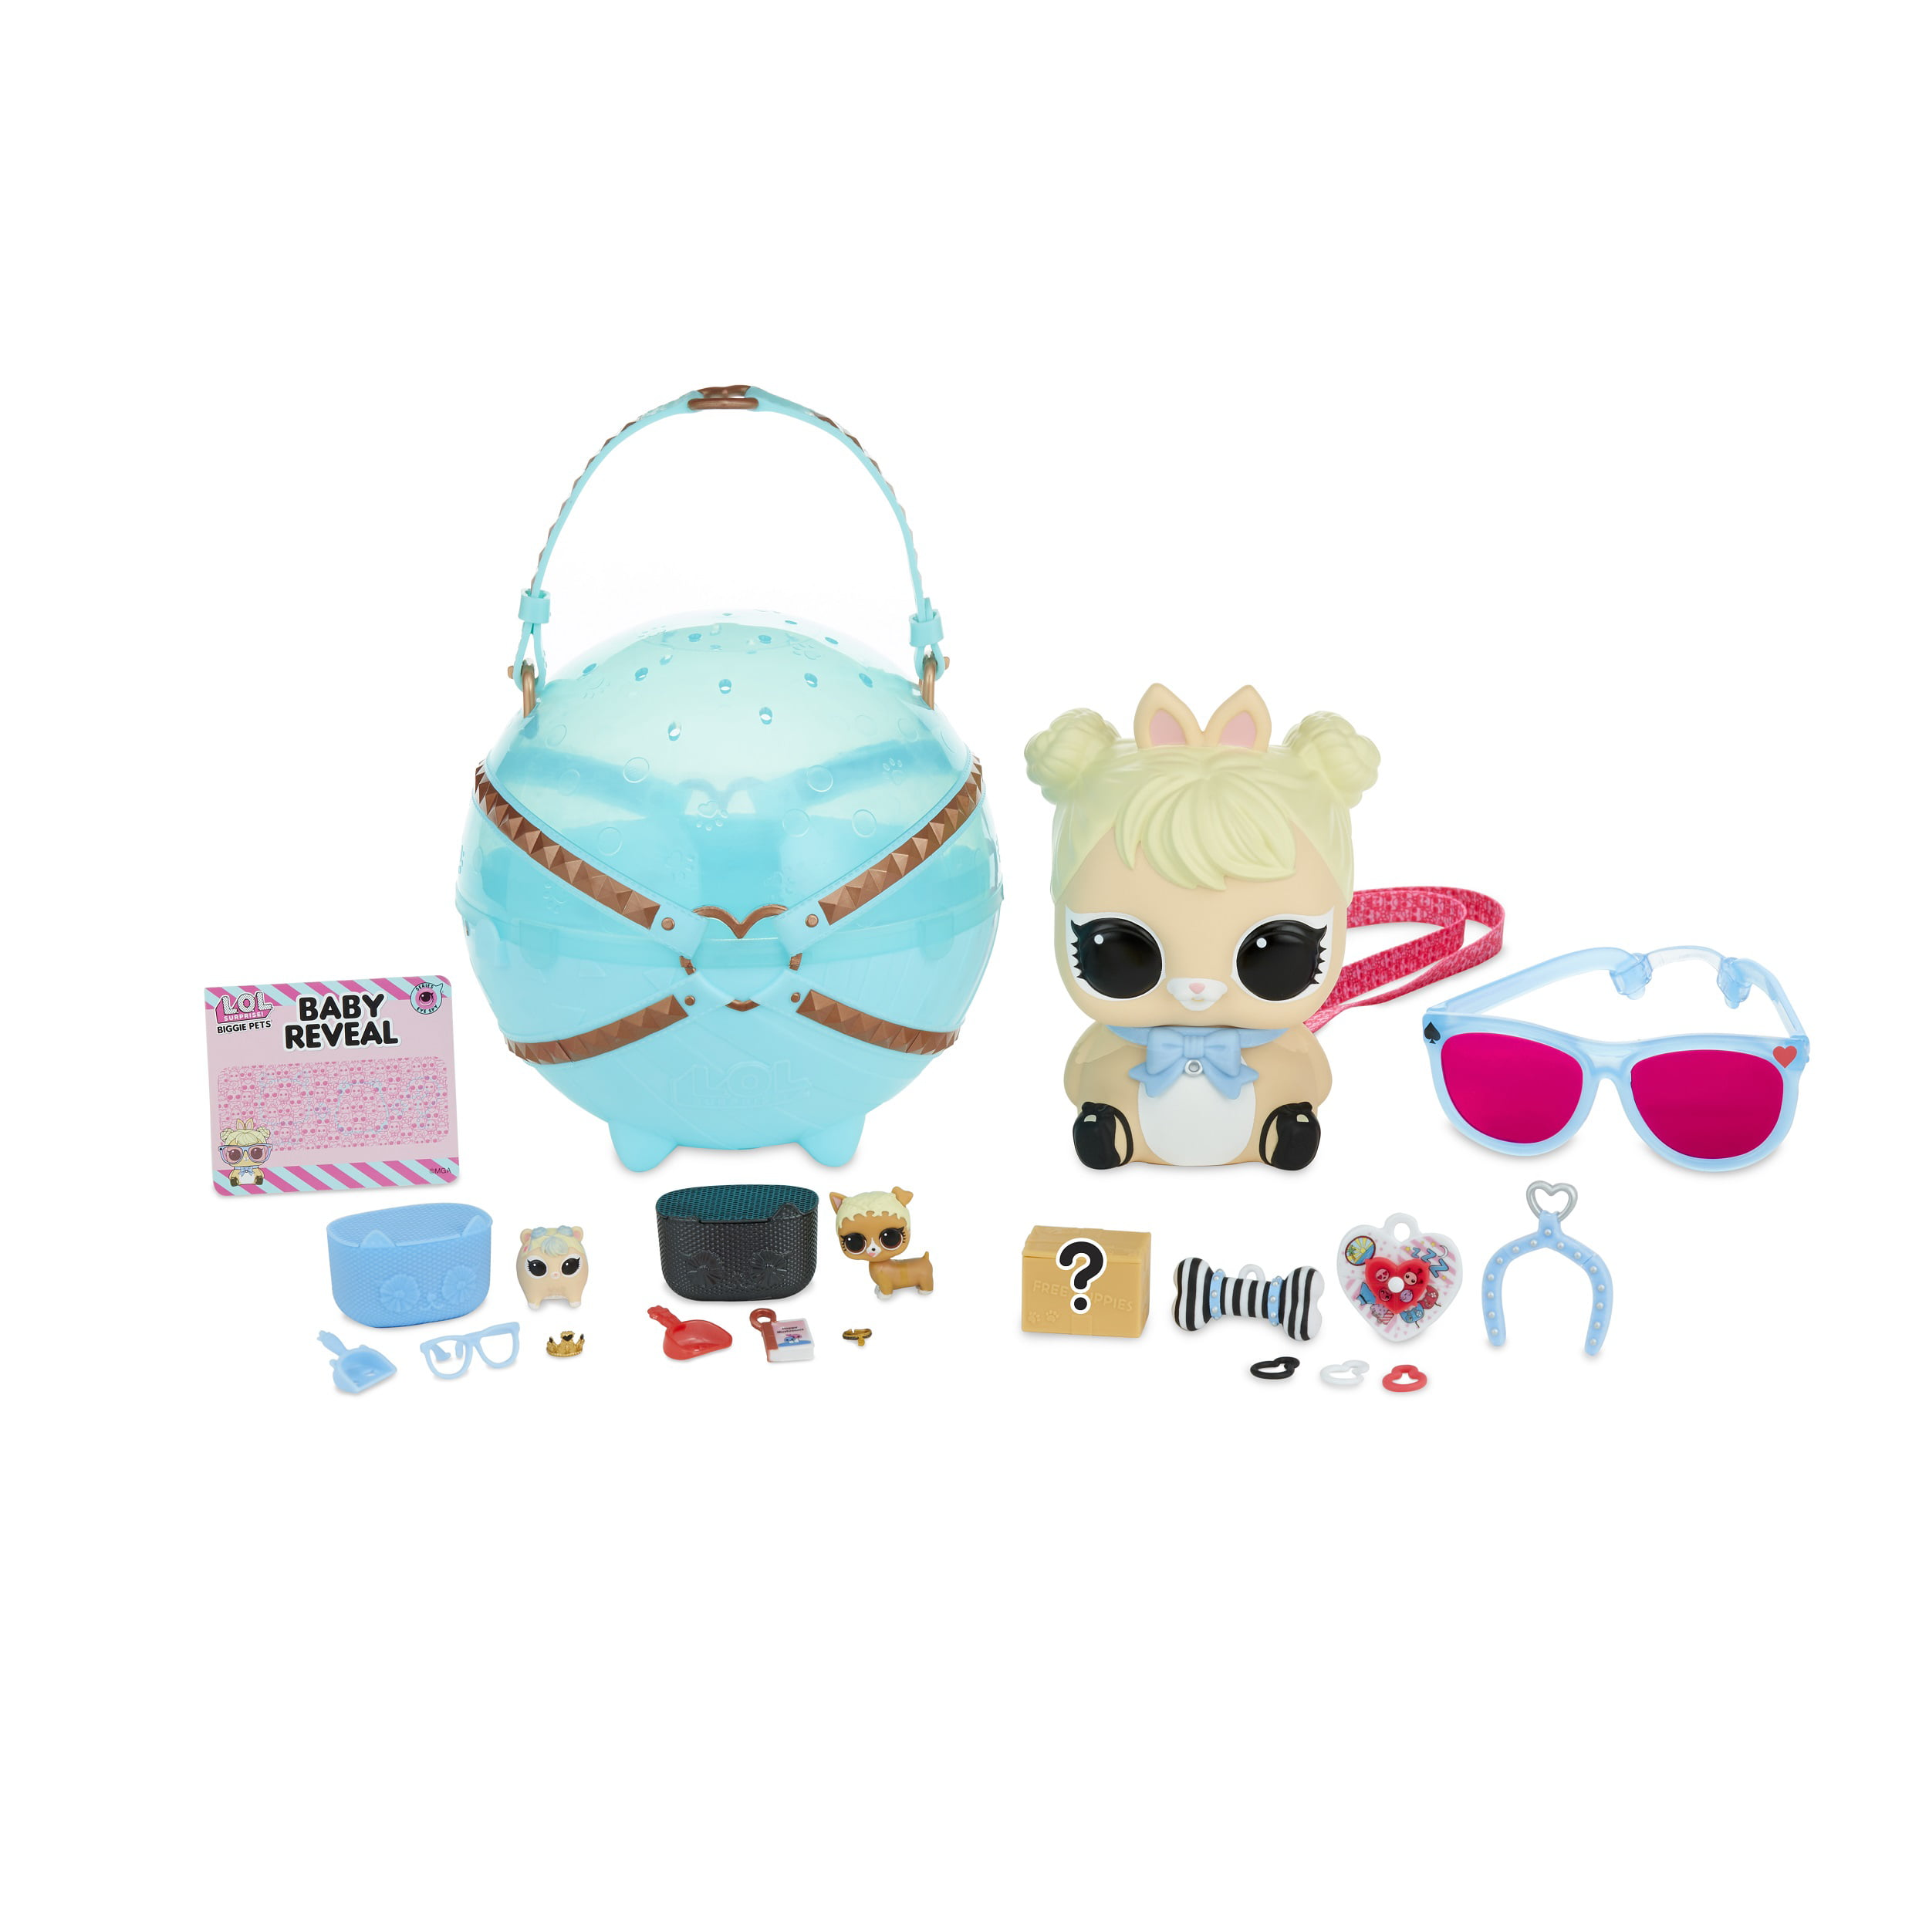 LOL COTTONTAIL QT Bunny Surprise Pets Doll with Accessory Bottle Hair Clip toy